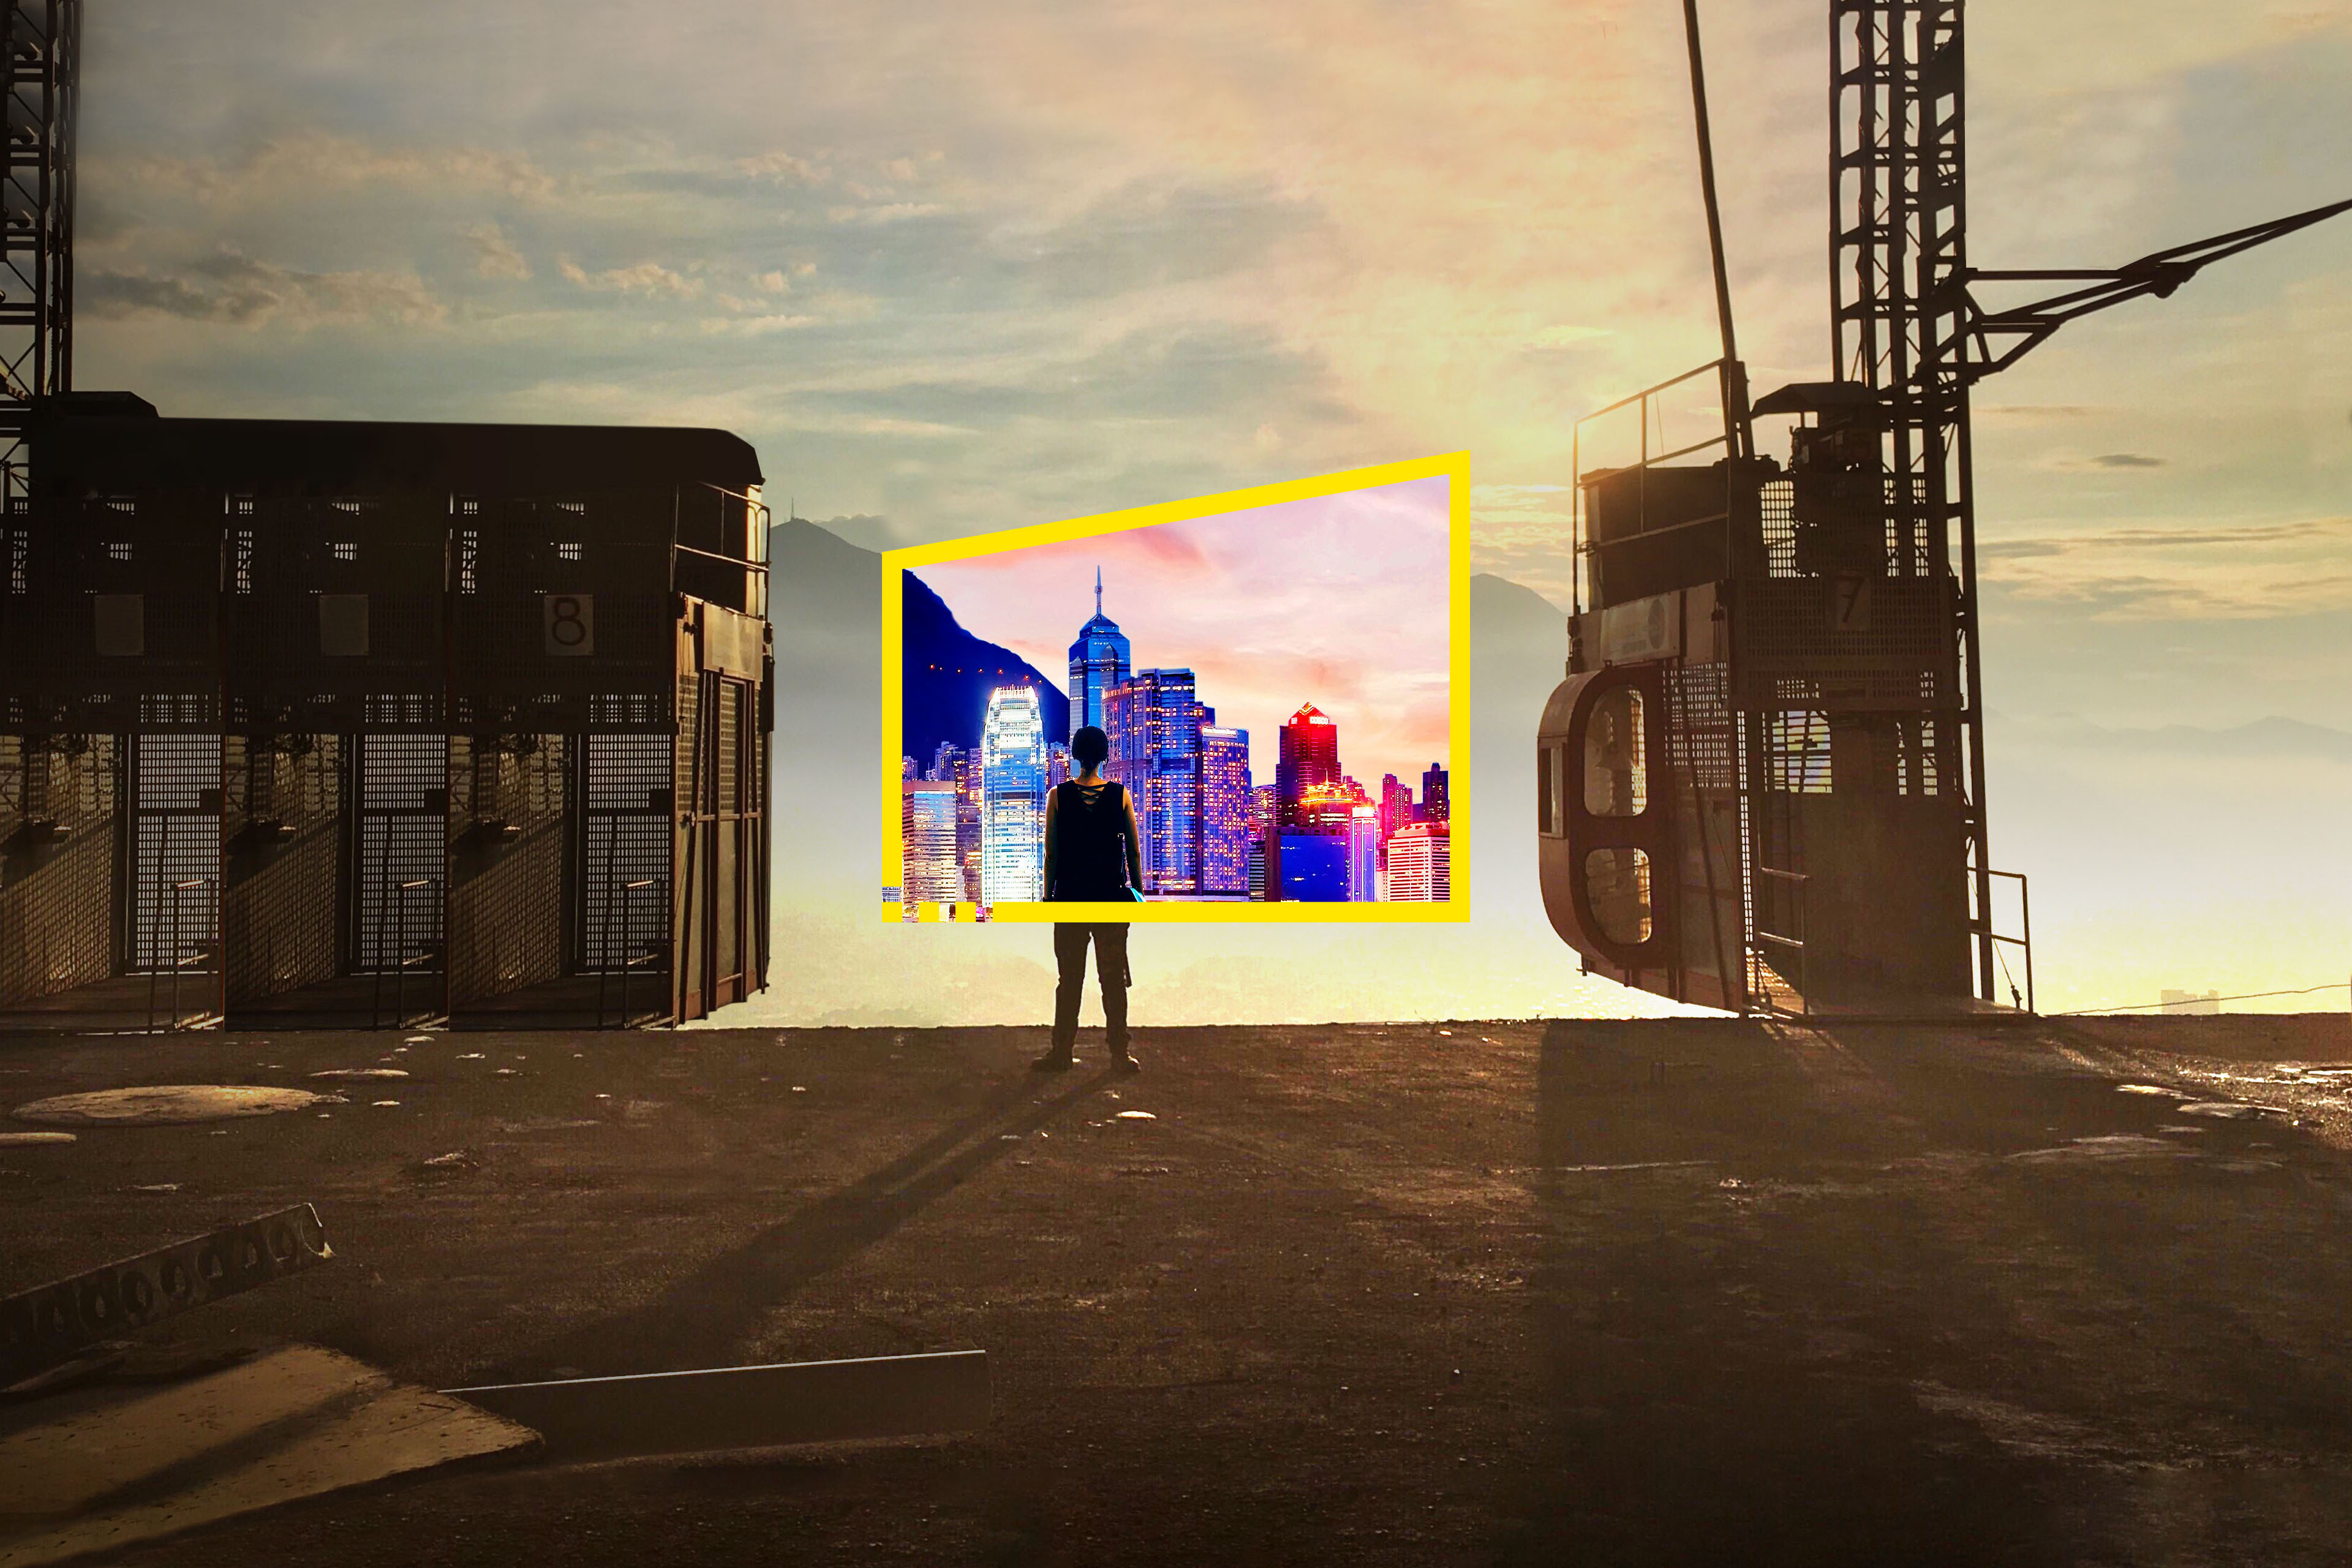 Reframe your future building site neon city